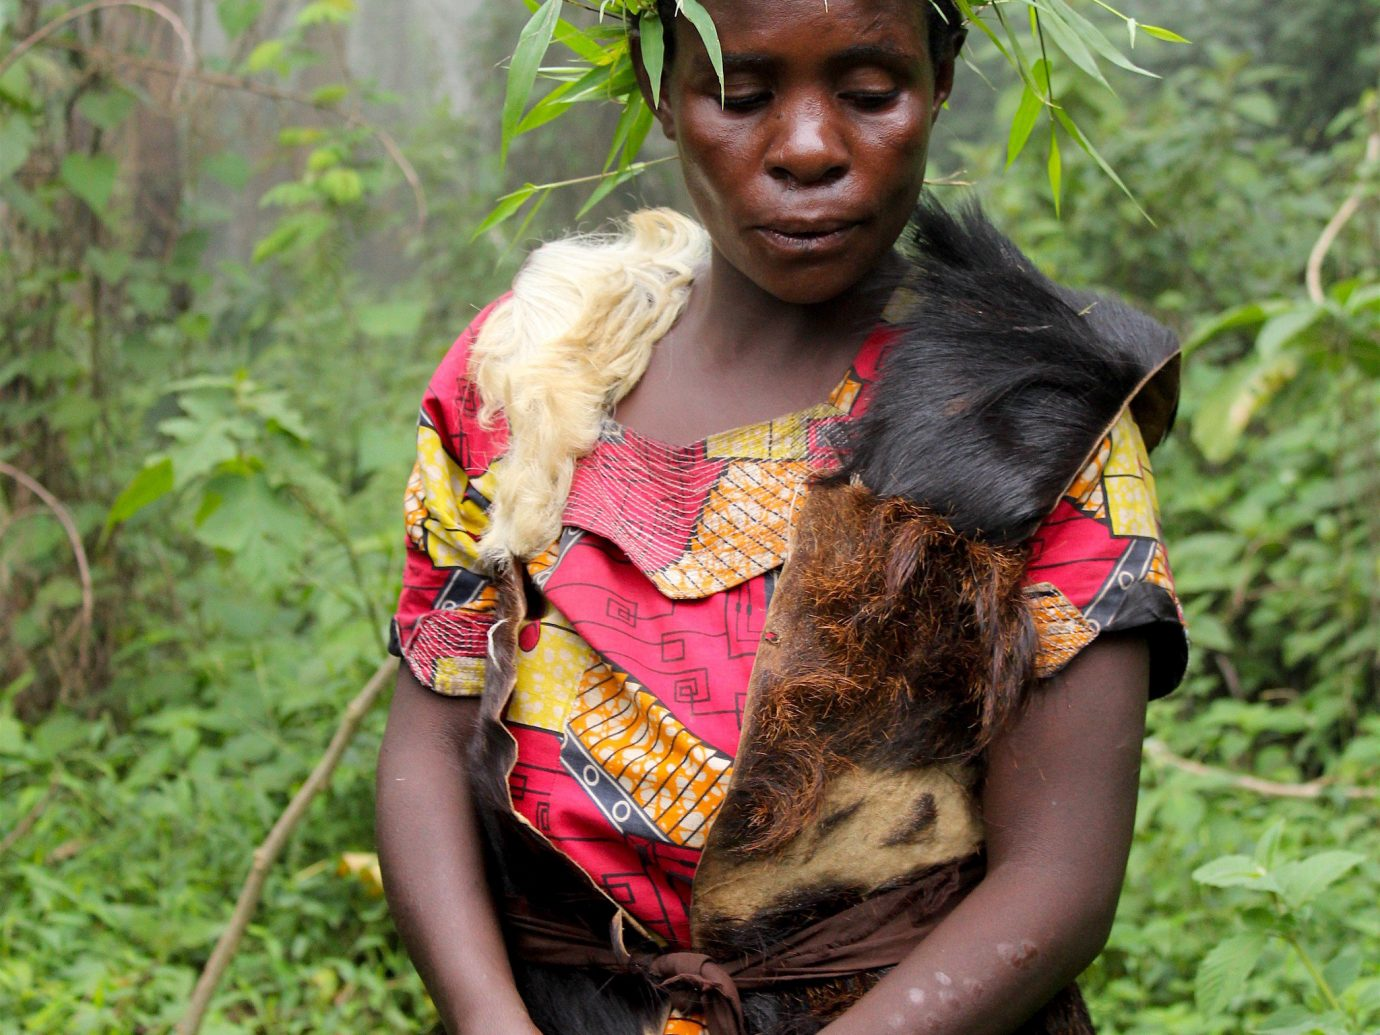 africa Trip Ideas tree outdoor person grass tribe plant tradition Jungle girl Forest